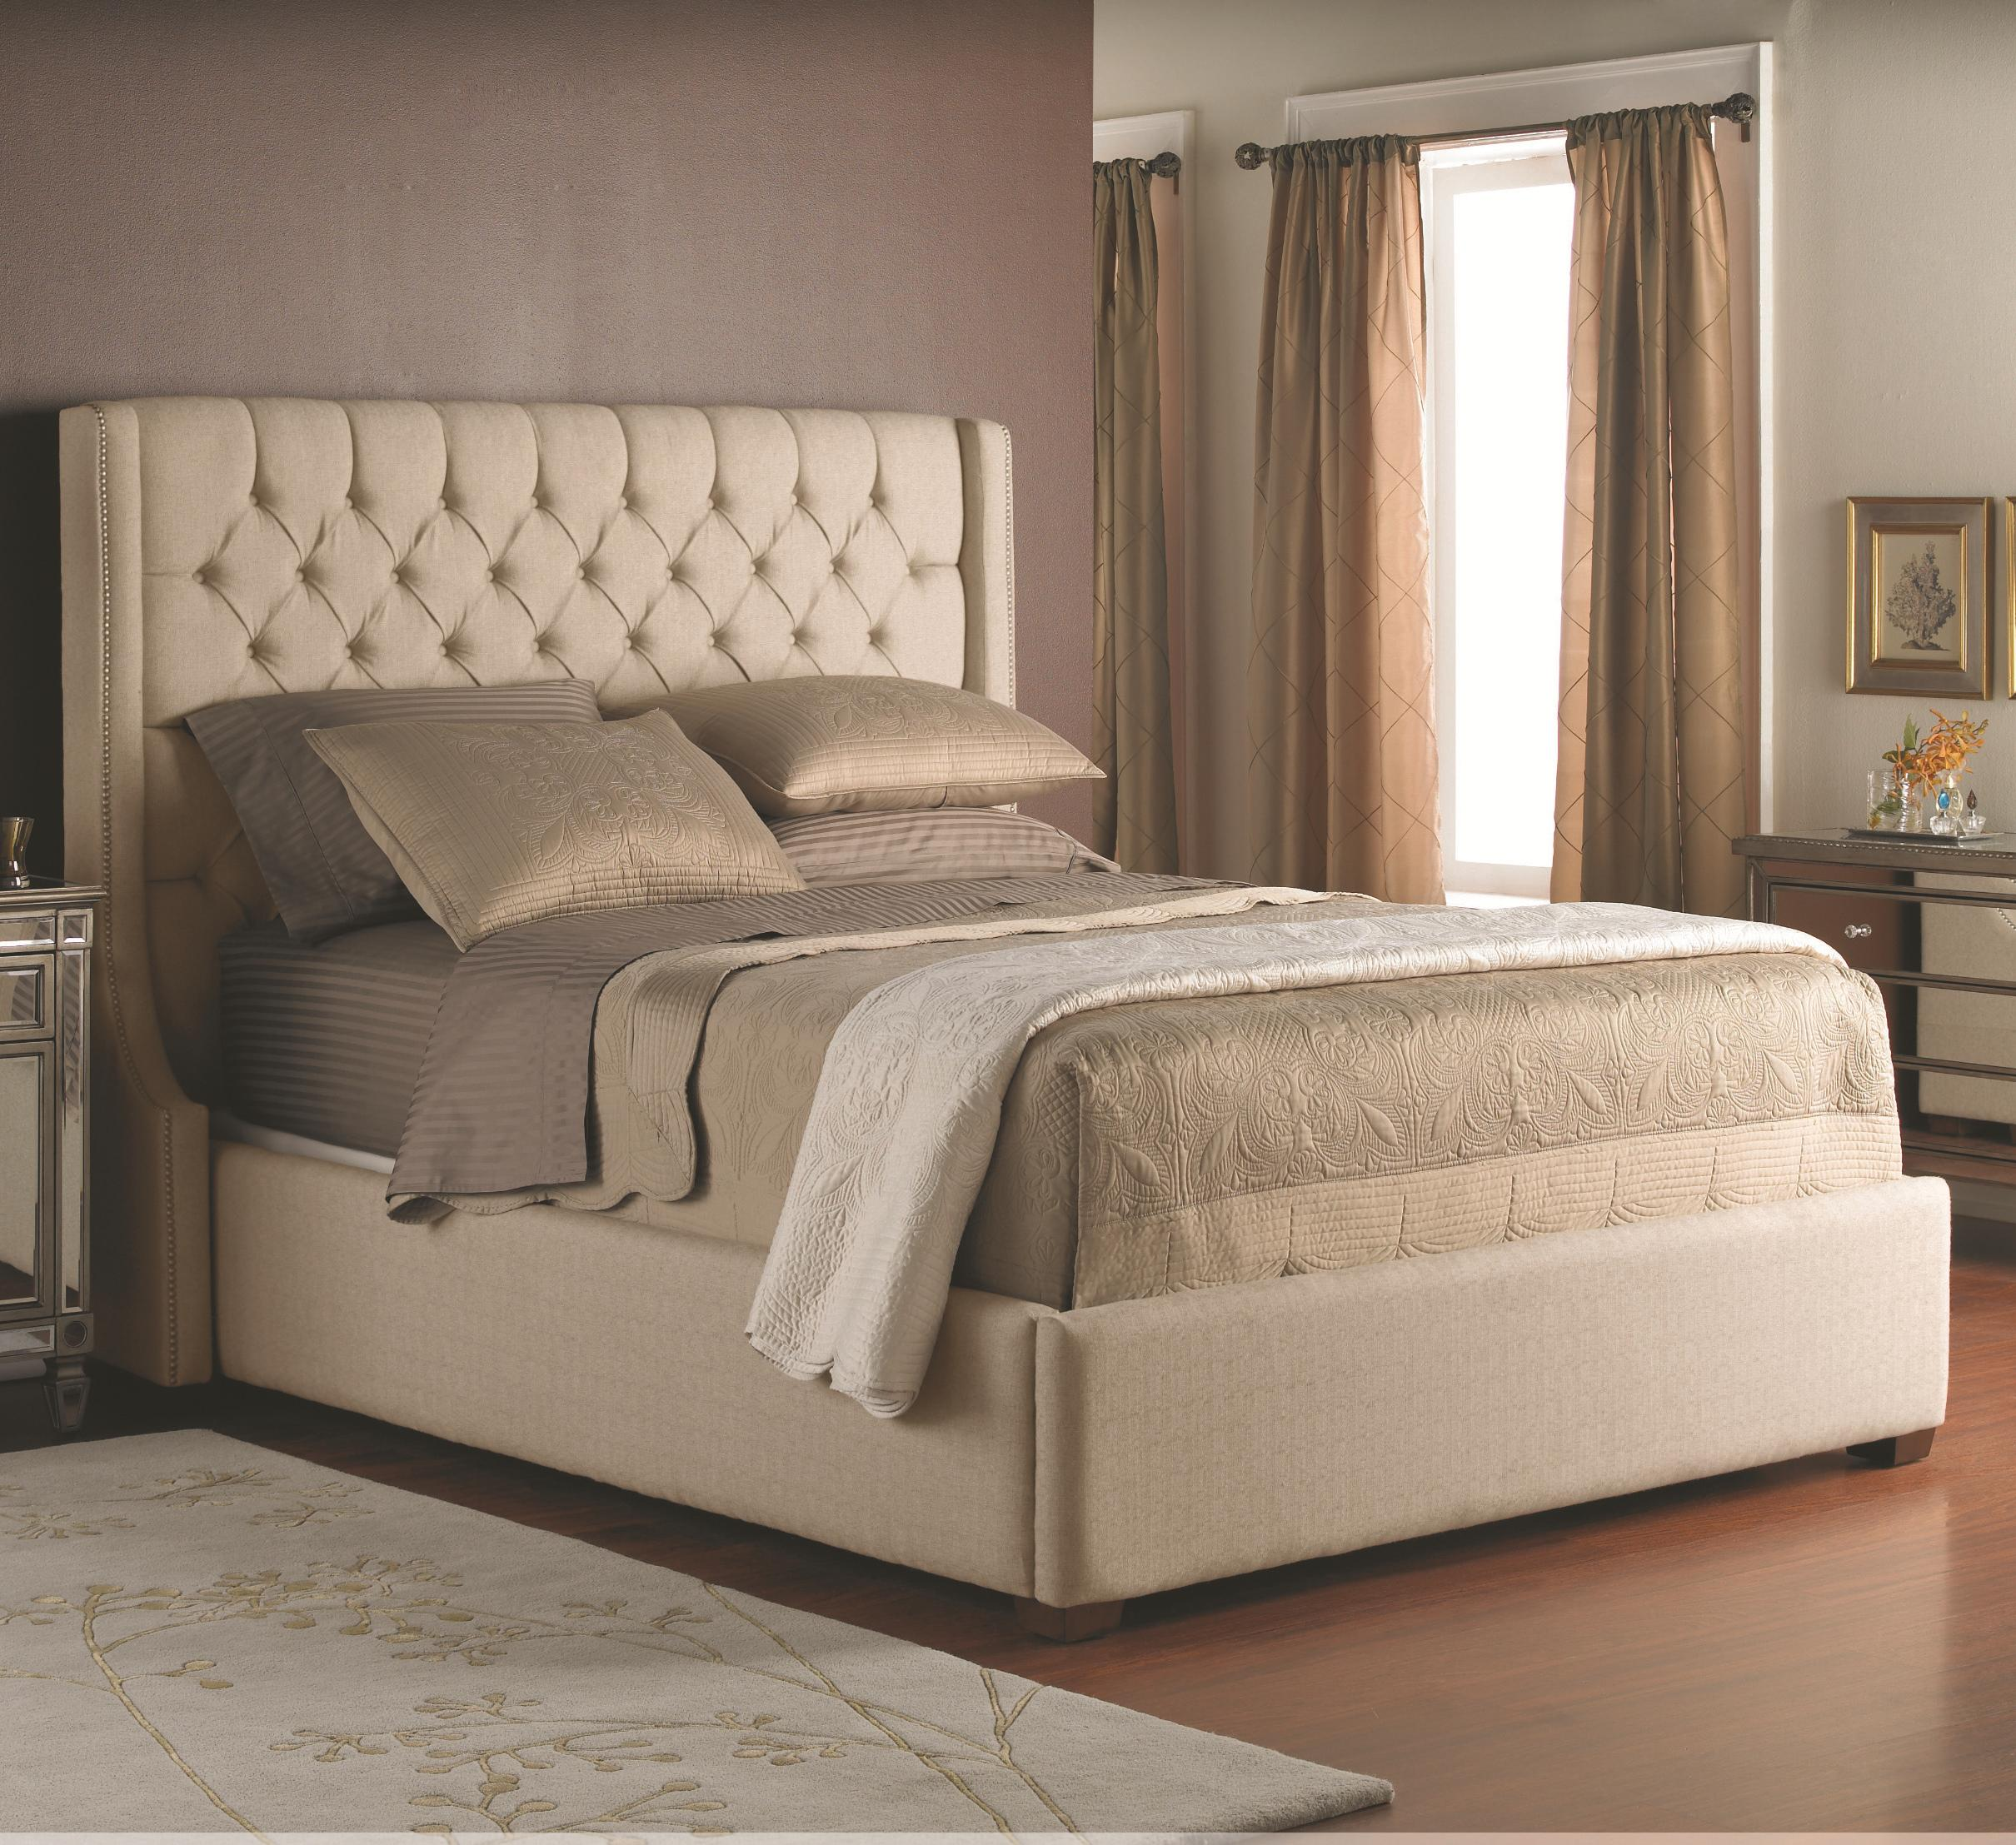 decor rest beds queen fabric headboard and base stoney creek furniture upholstered bed. Black Bedroom Furniture Sets. Home Design Ideas